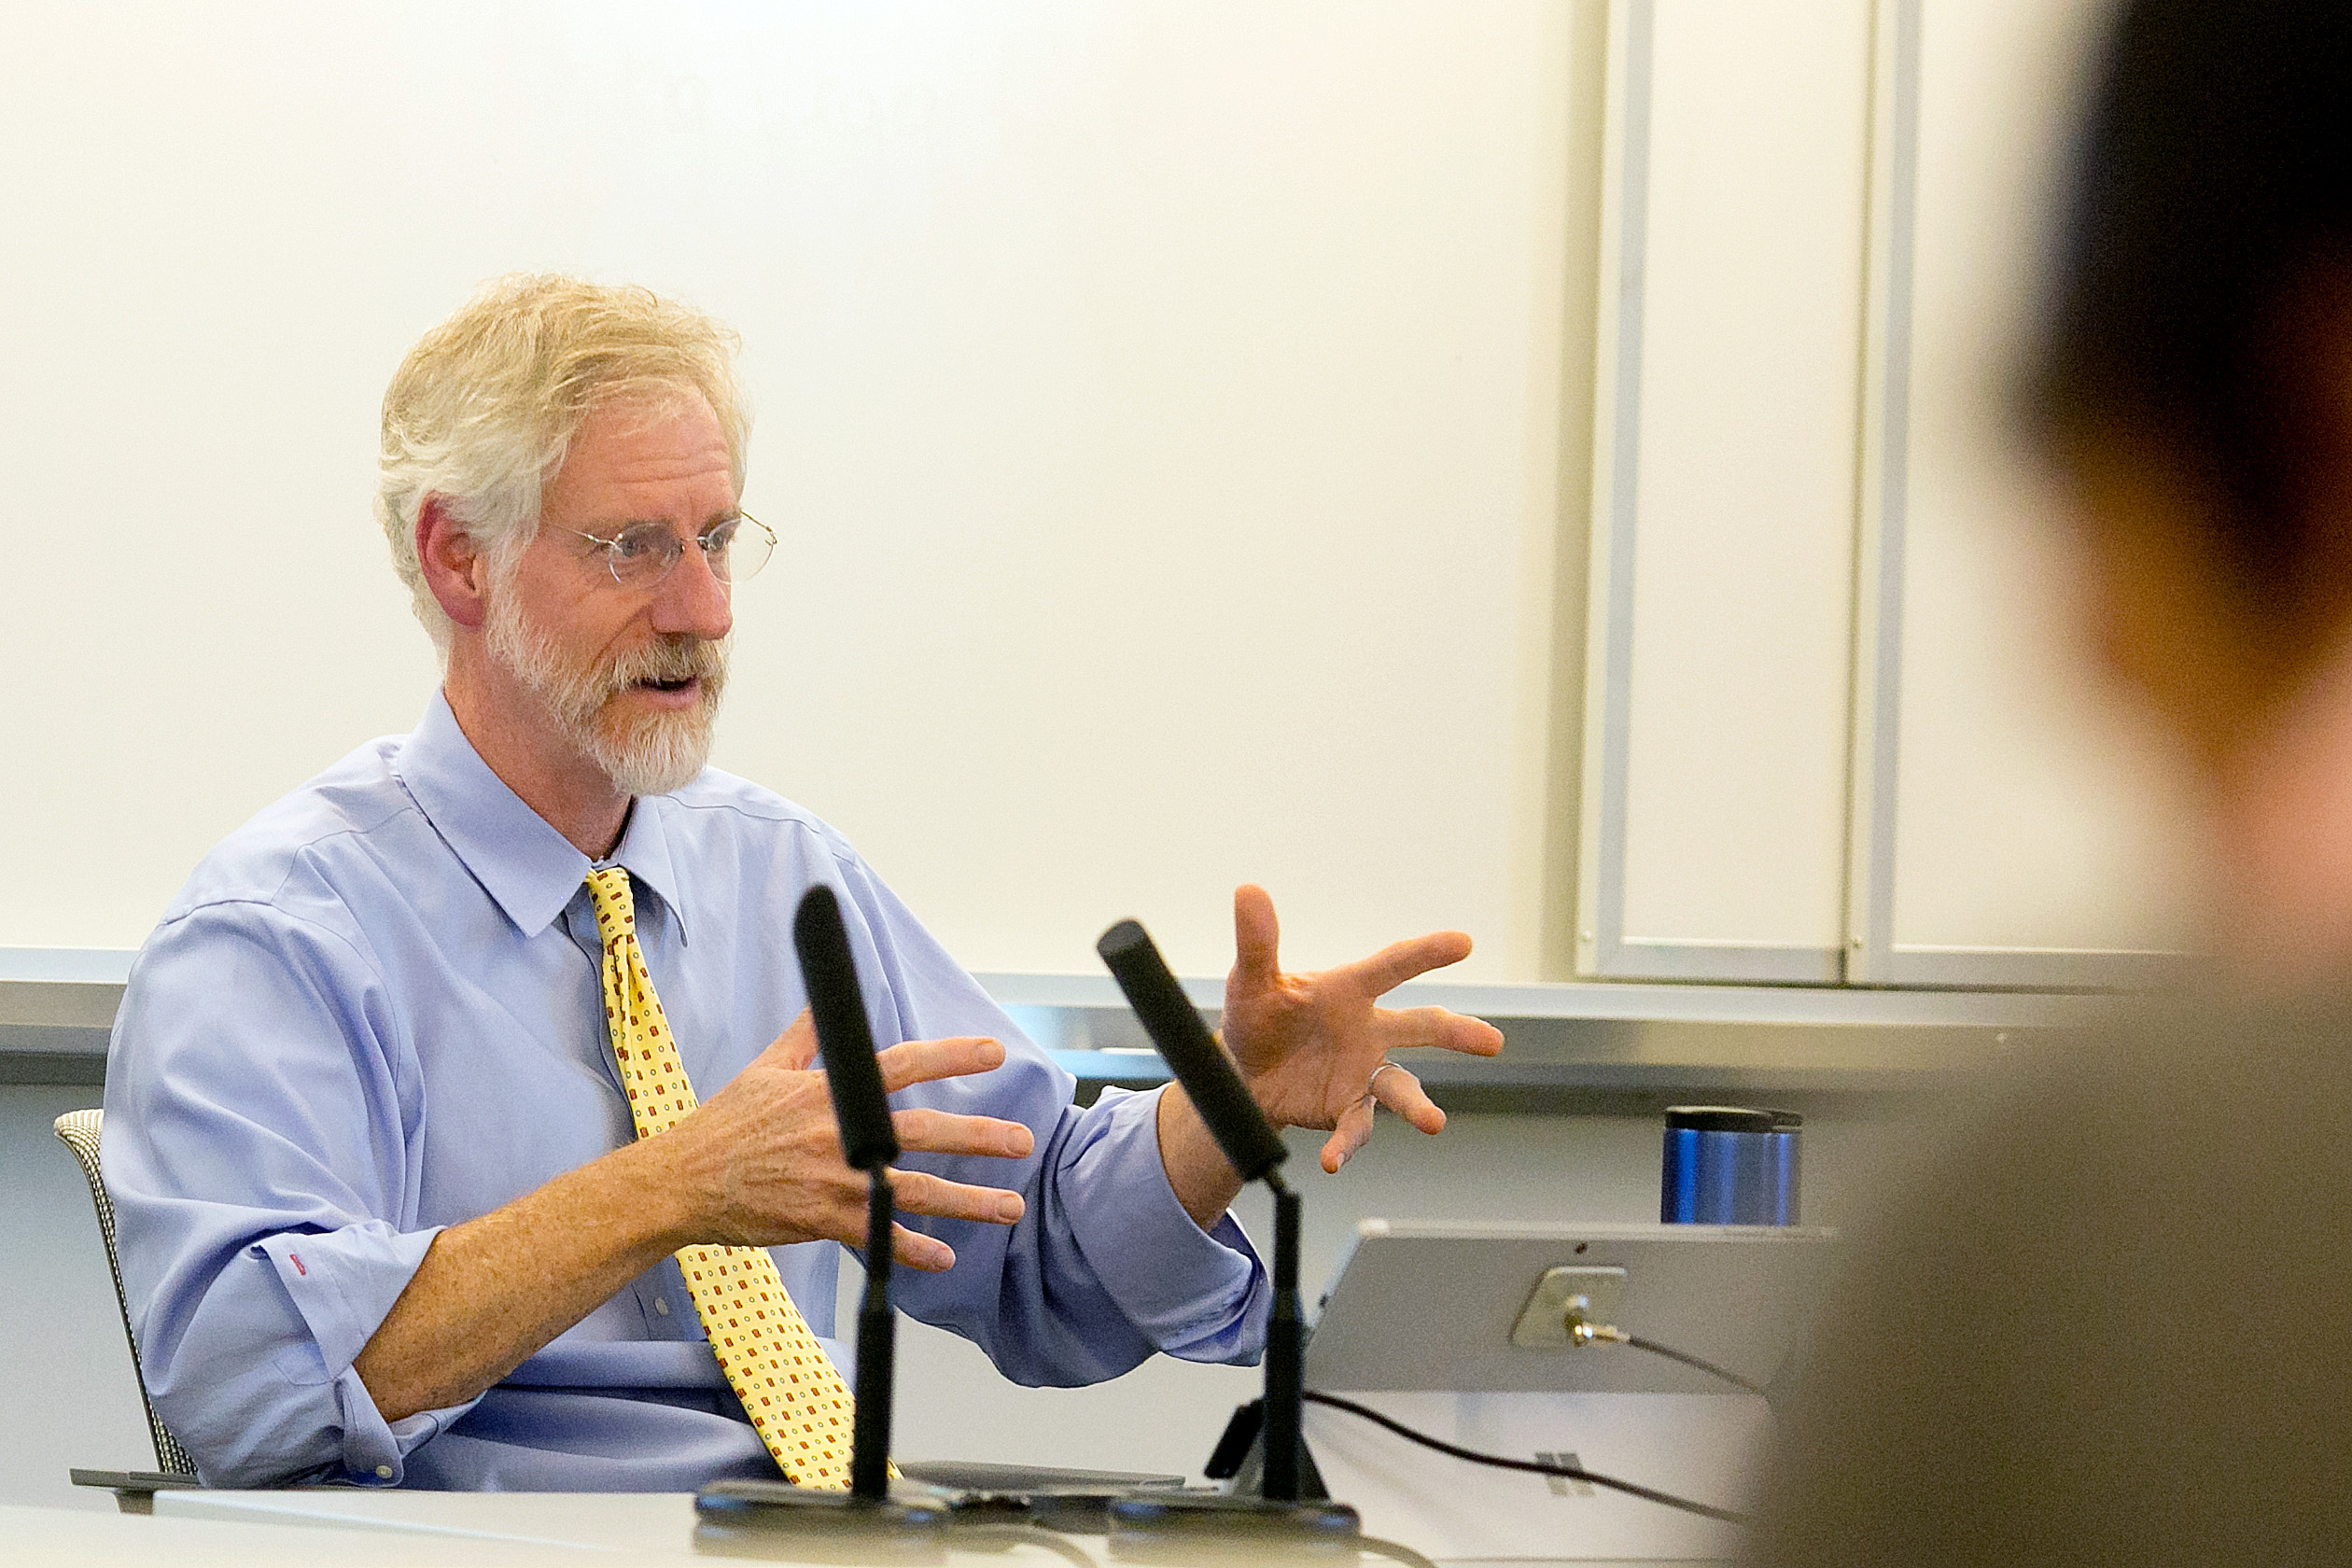 Prof. Michael Carroll